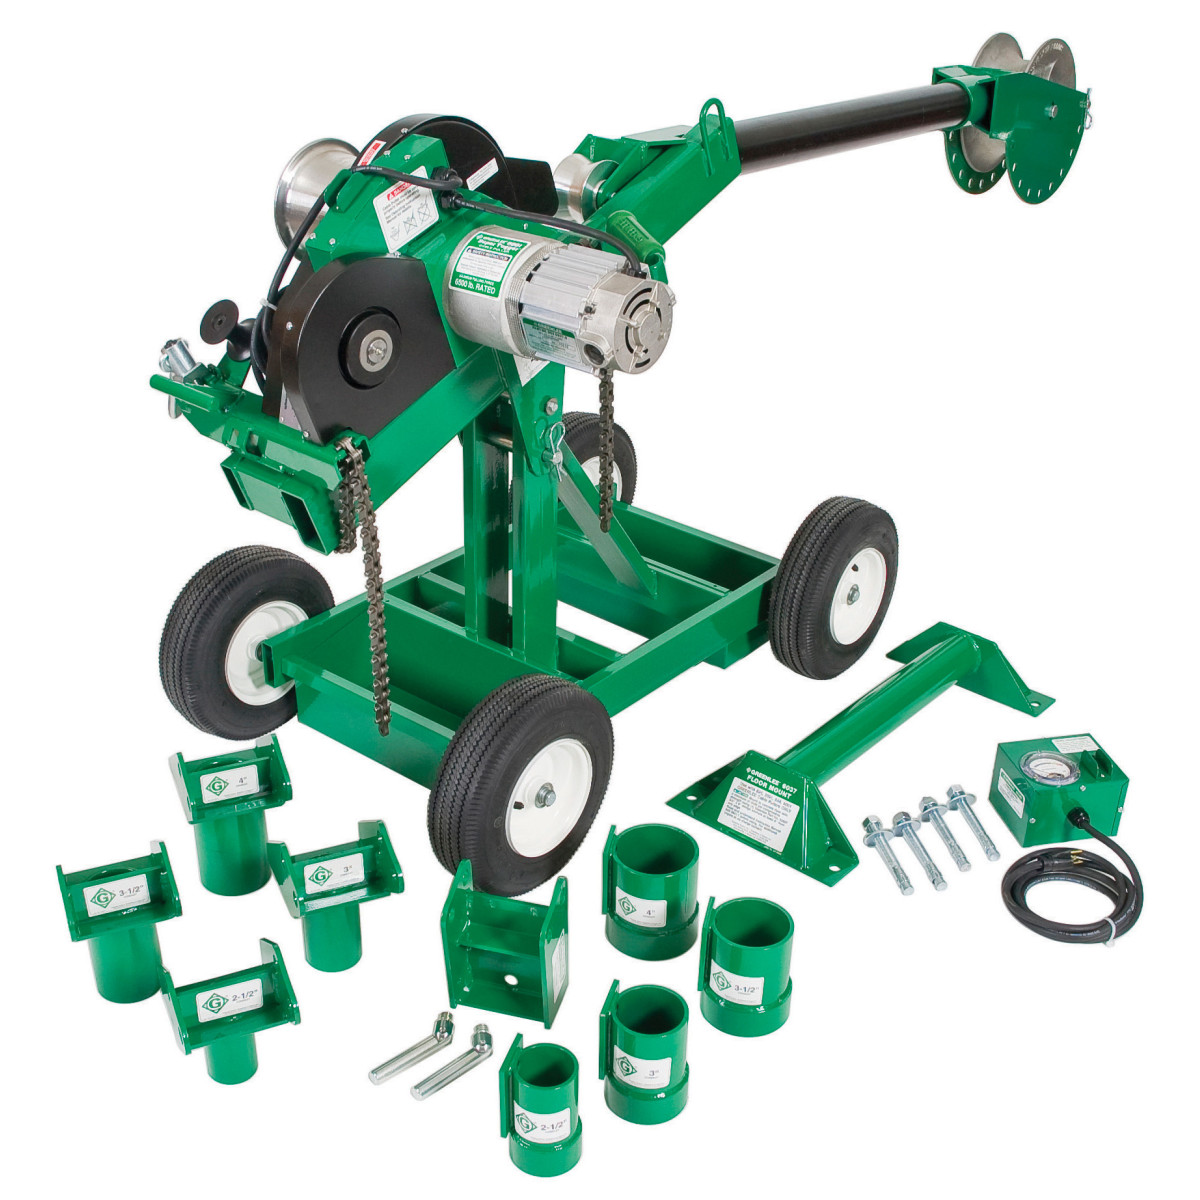 Greenlee,6004,PULLER PACKAGE,CABLE (6004)